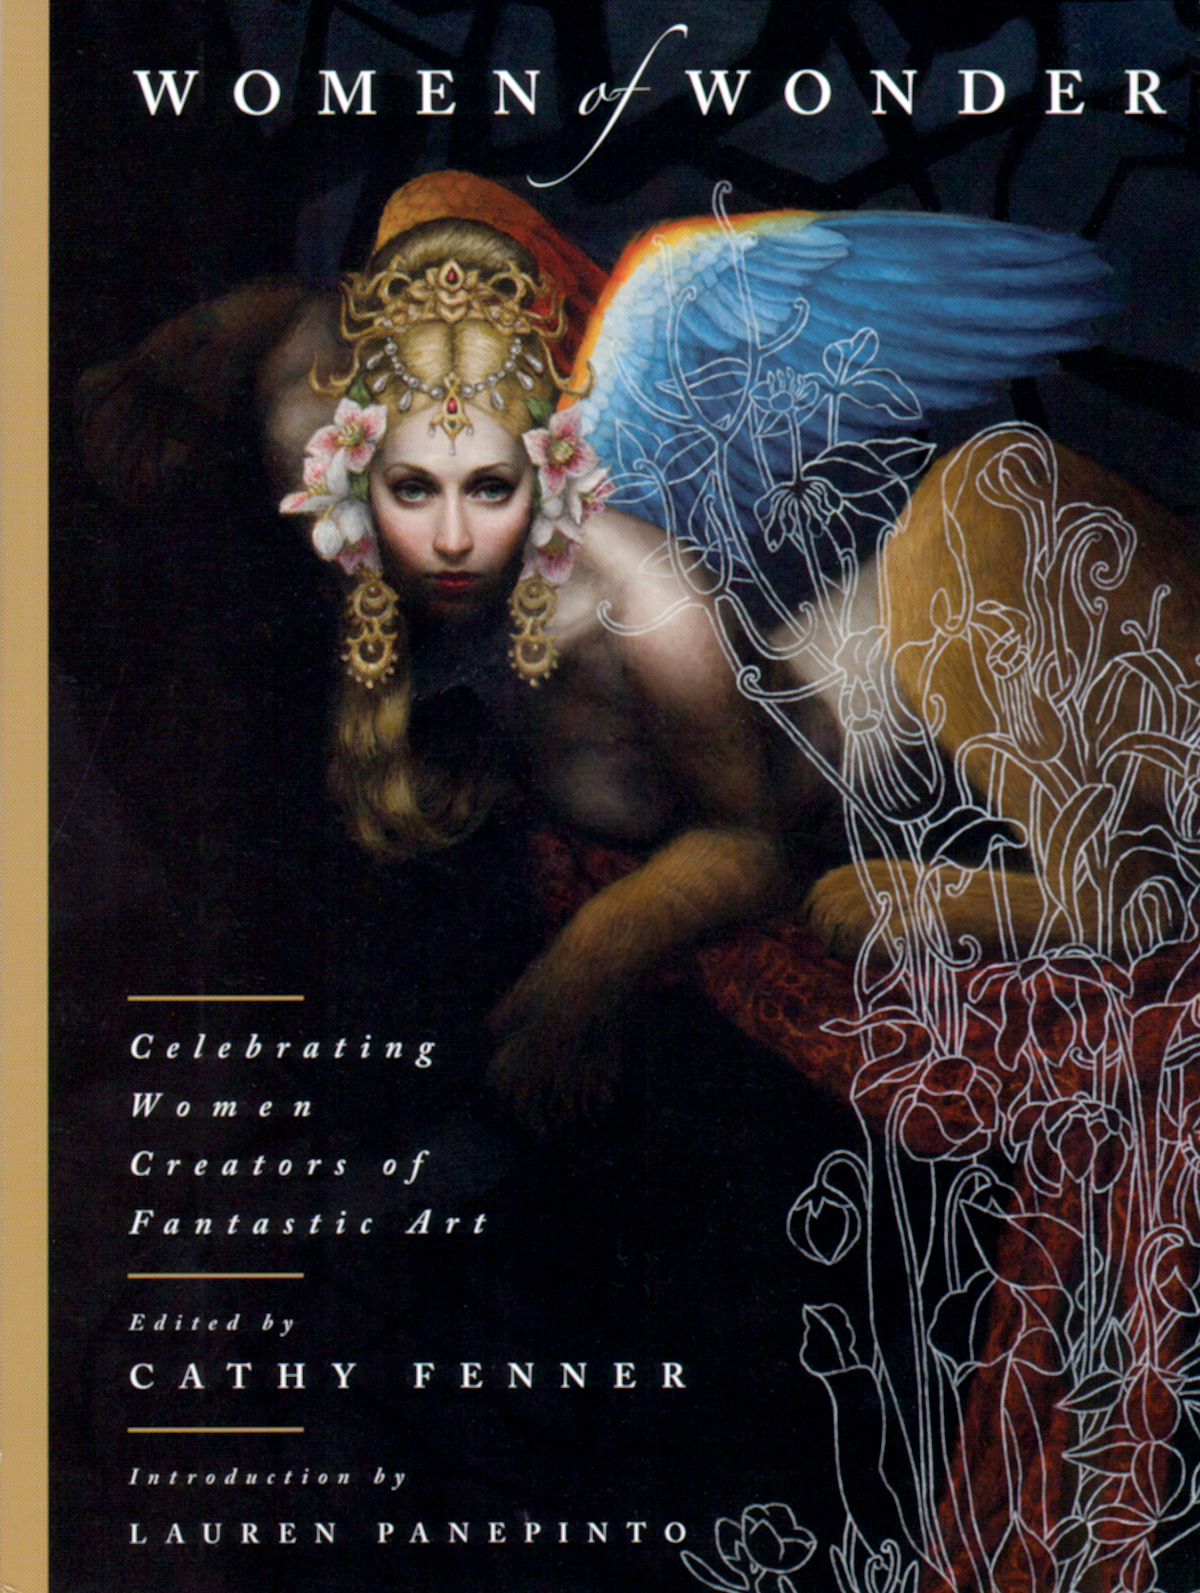 """Women of Wonder - Celebrating Women Creators of Fantastic Art"" edited by Cathy Fenner."